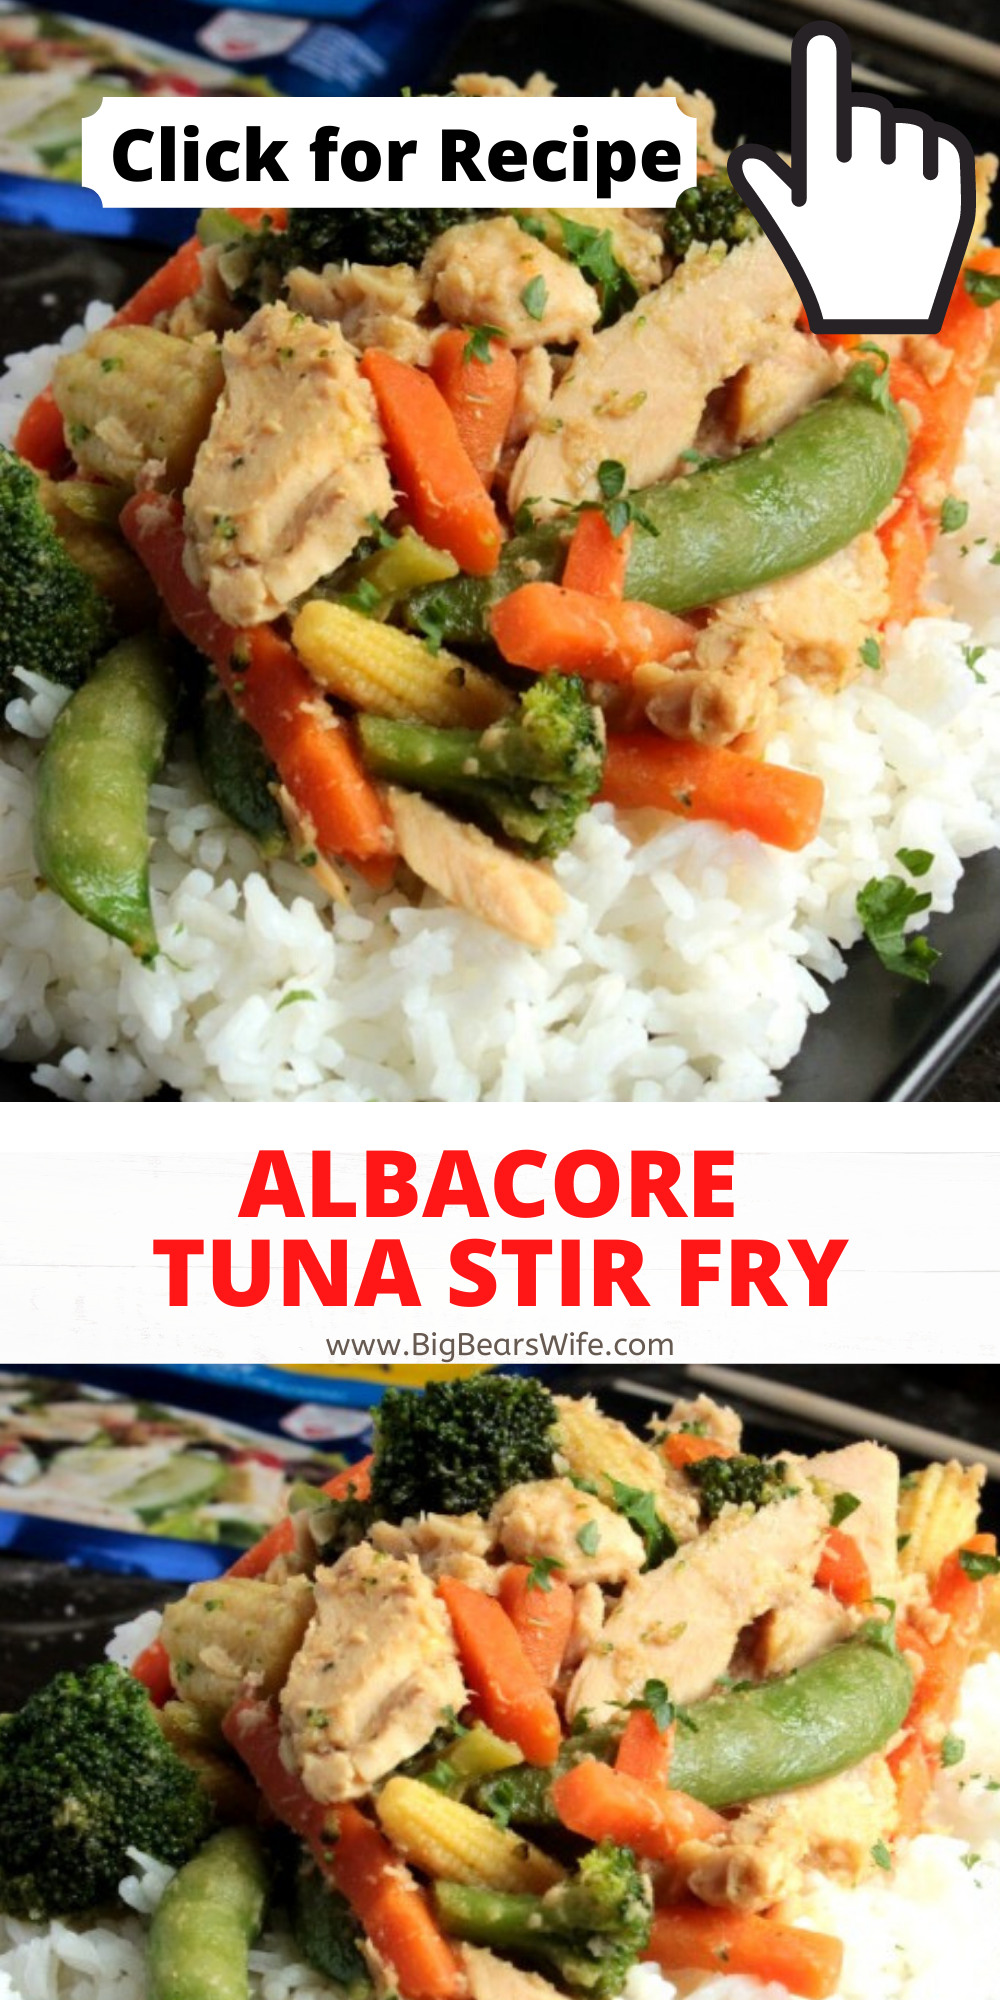 Albacore Tuna Stir Fry is a super easy dinner for 4 that's ready in under 15 minutes! via @bigbearswife